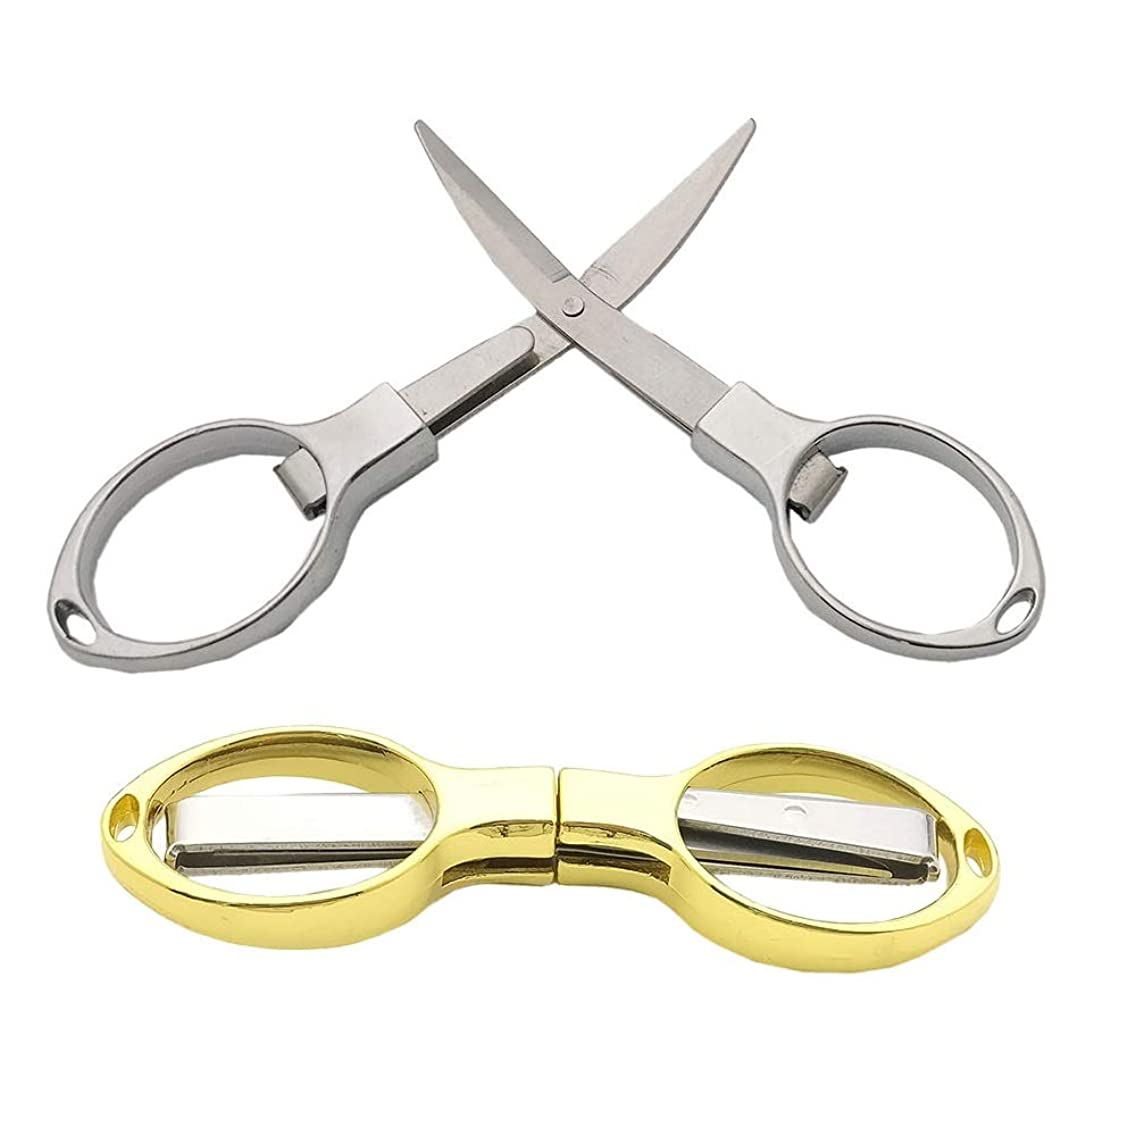 Chris.W Pack of 2 Folding Safety Scissors Foldable Pocket Sharp Blade Travel Scissors Cutter - Can Hang on Your Key Chain (Silver/Golden)